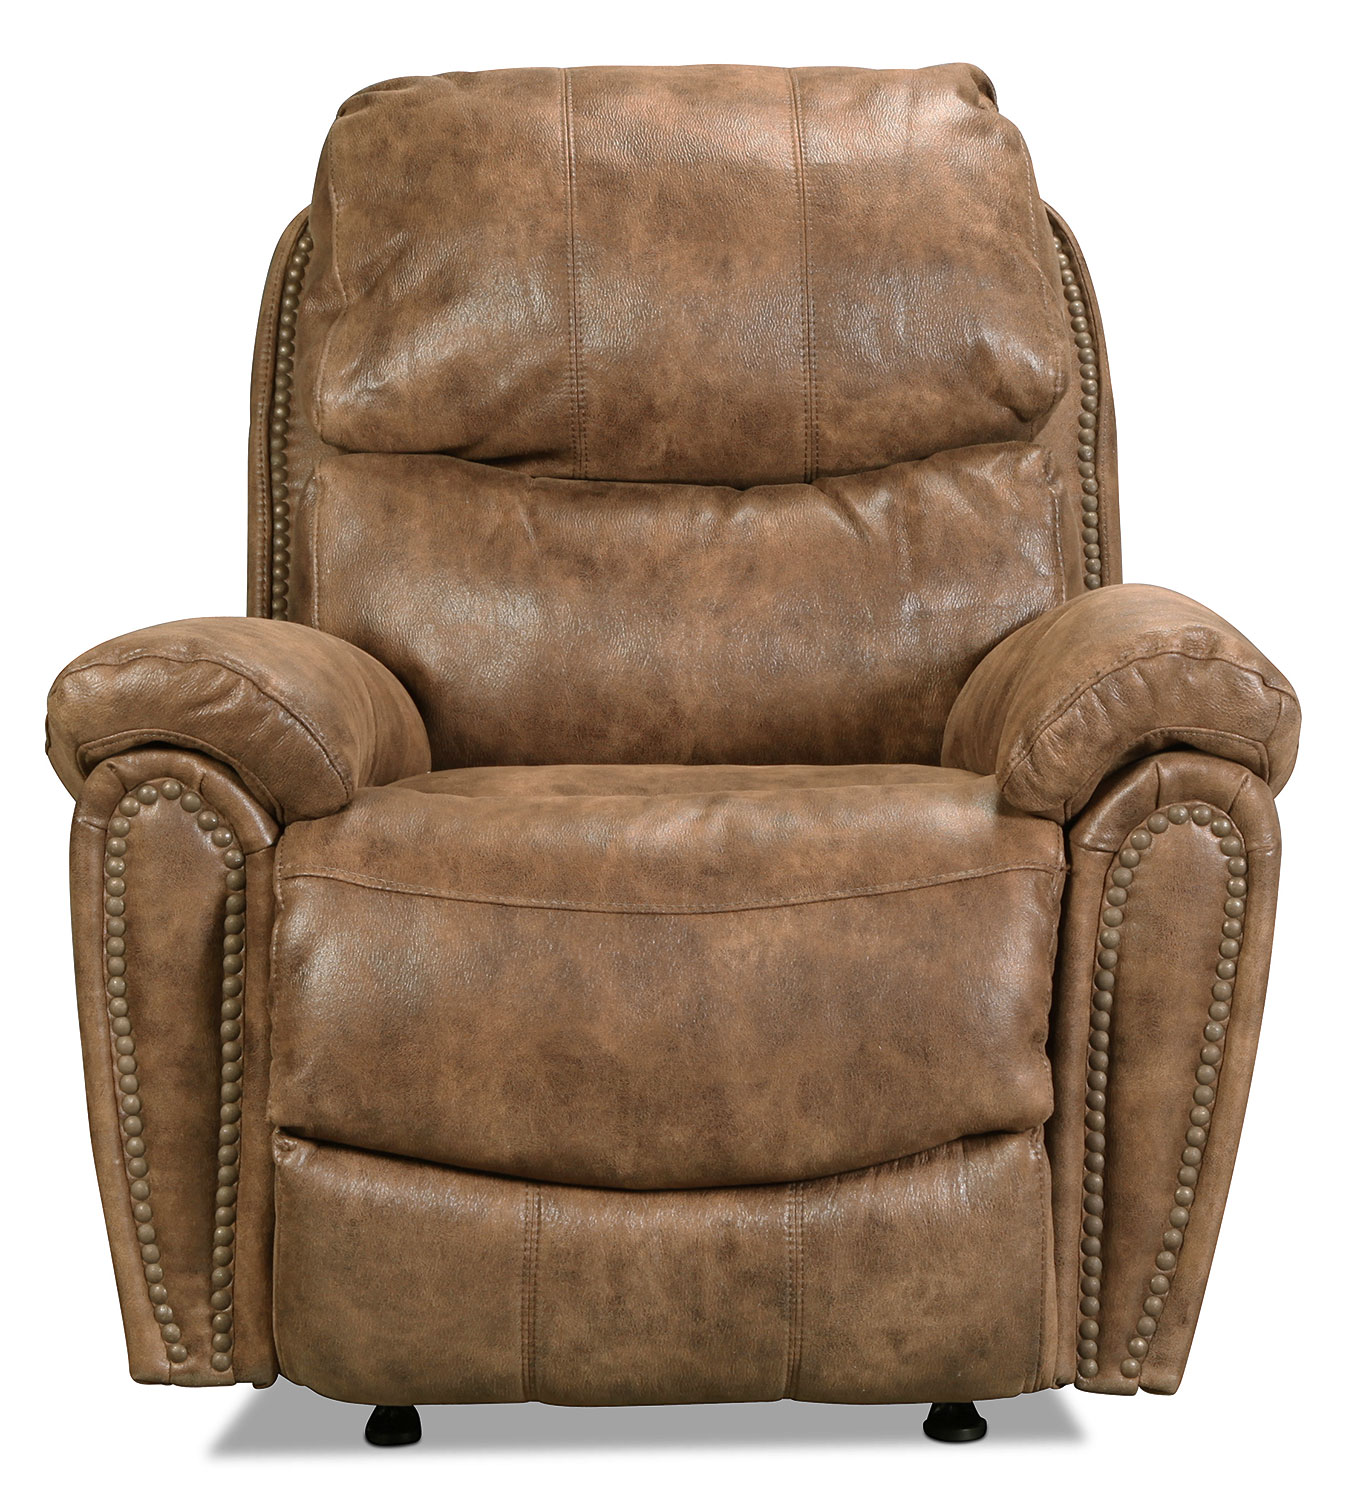 Chase Rocker Recliner - Walnut